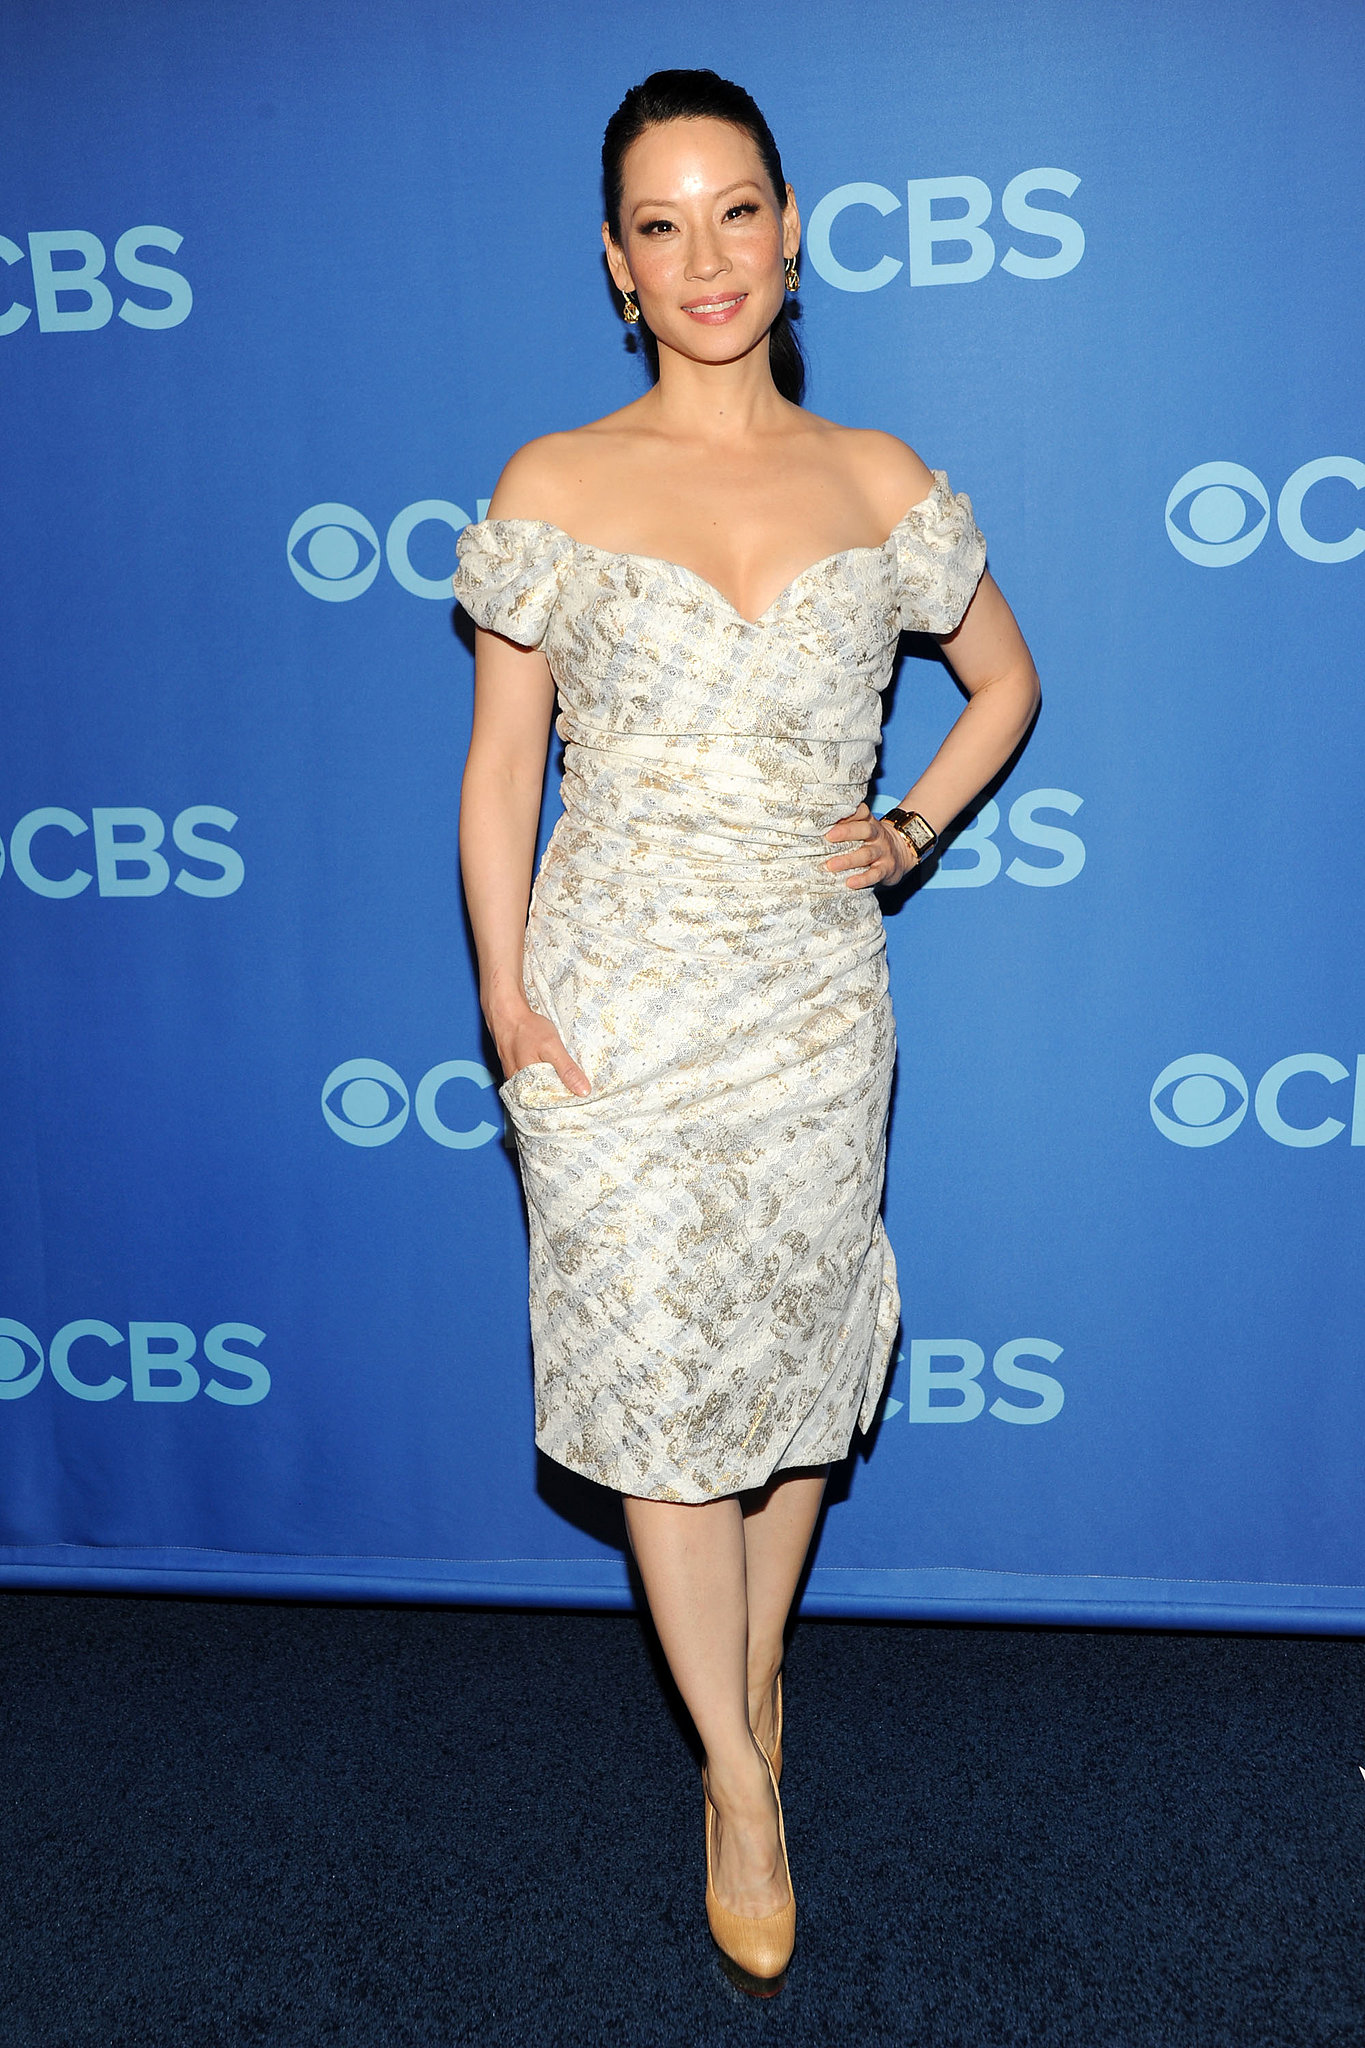 Lucy Liu put her décolletage on display in an off-the-shoulder printed dress at the CBS upfronts in NYC.